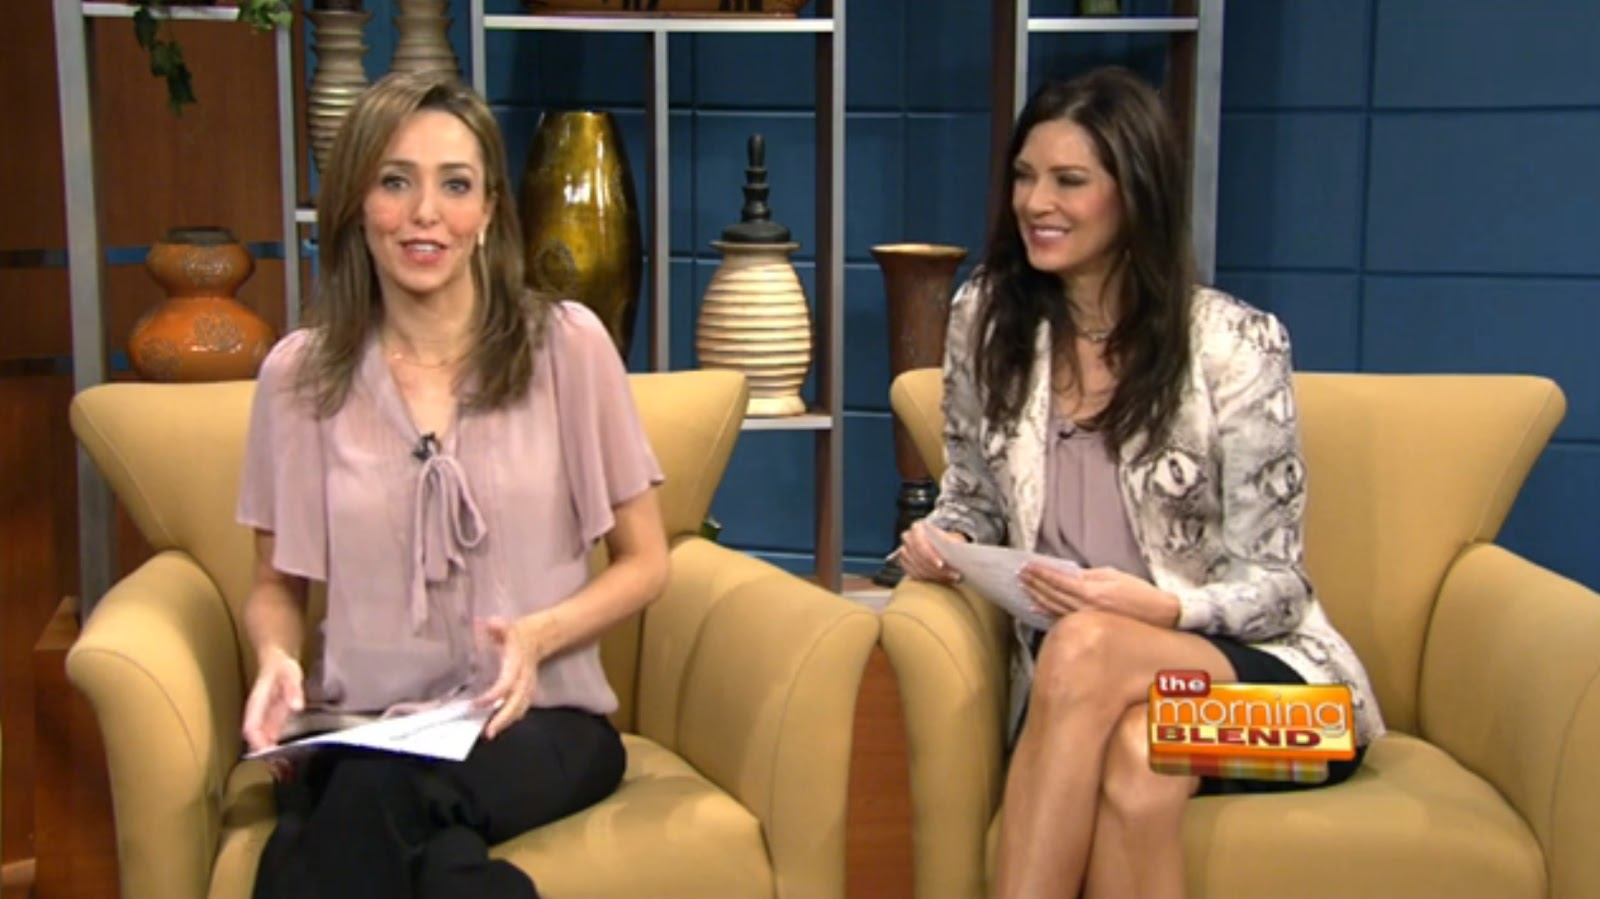 A Model's Secrets: Going on TV ... What Should I Wear for ...